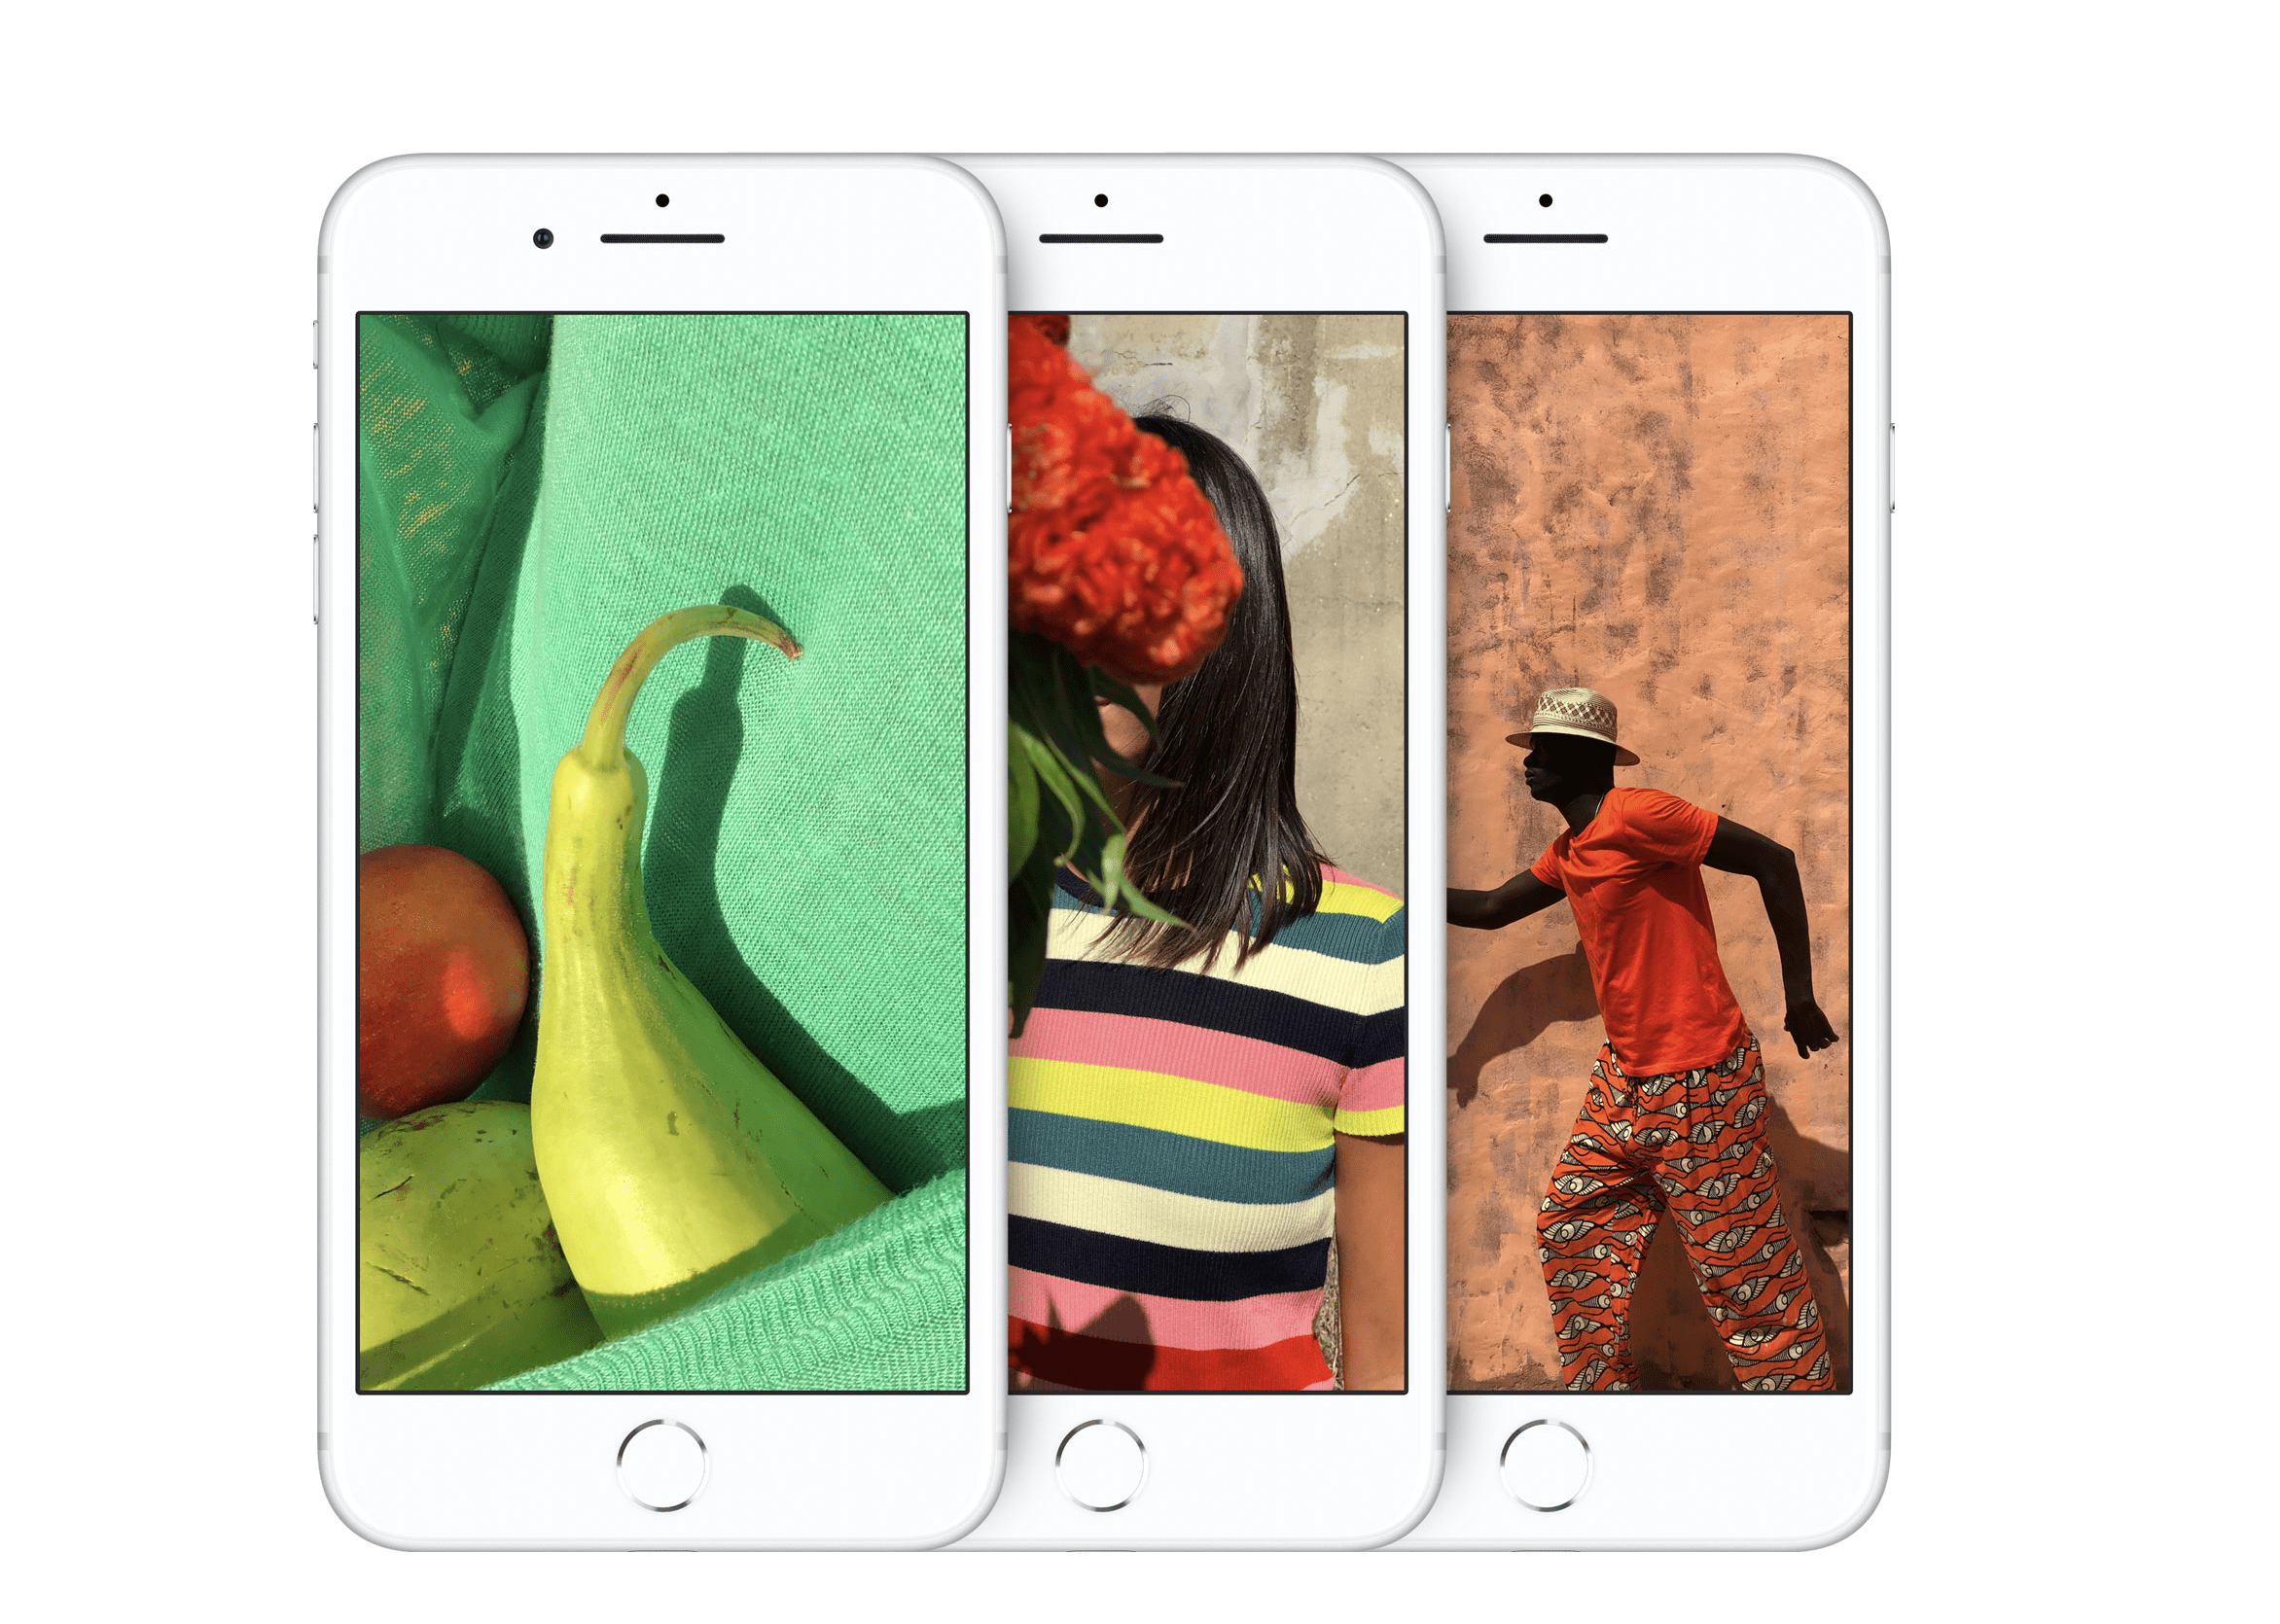 Both The IPhone 8 And Plus Have New 12MP Cameras With Larger Faster Sensors Improved Colour Filters Deeper Pixels Optical Image Stabilisation